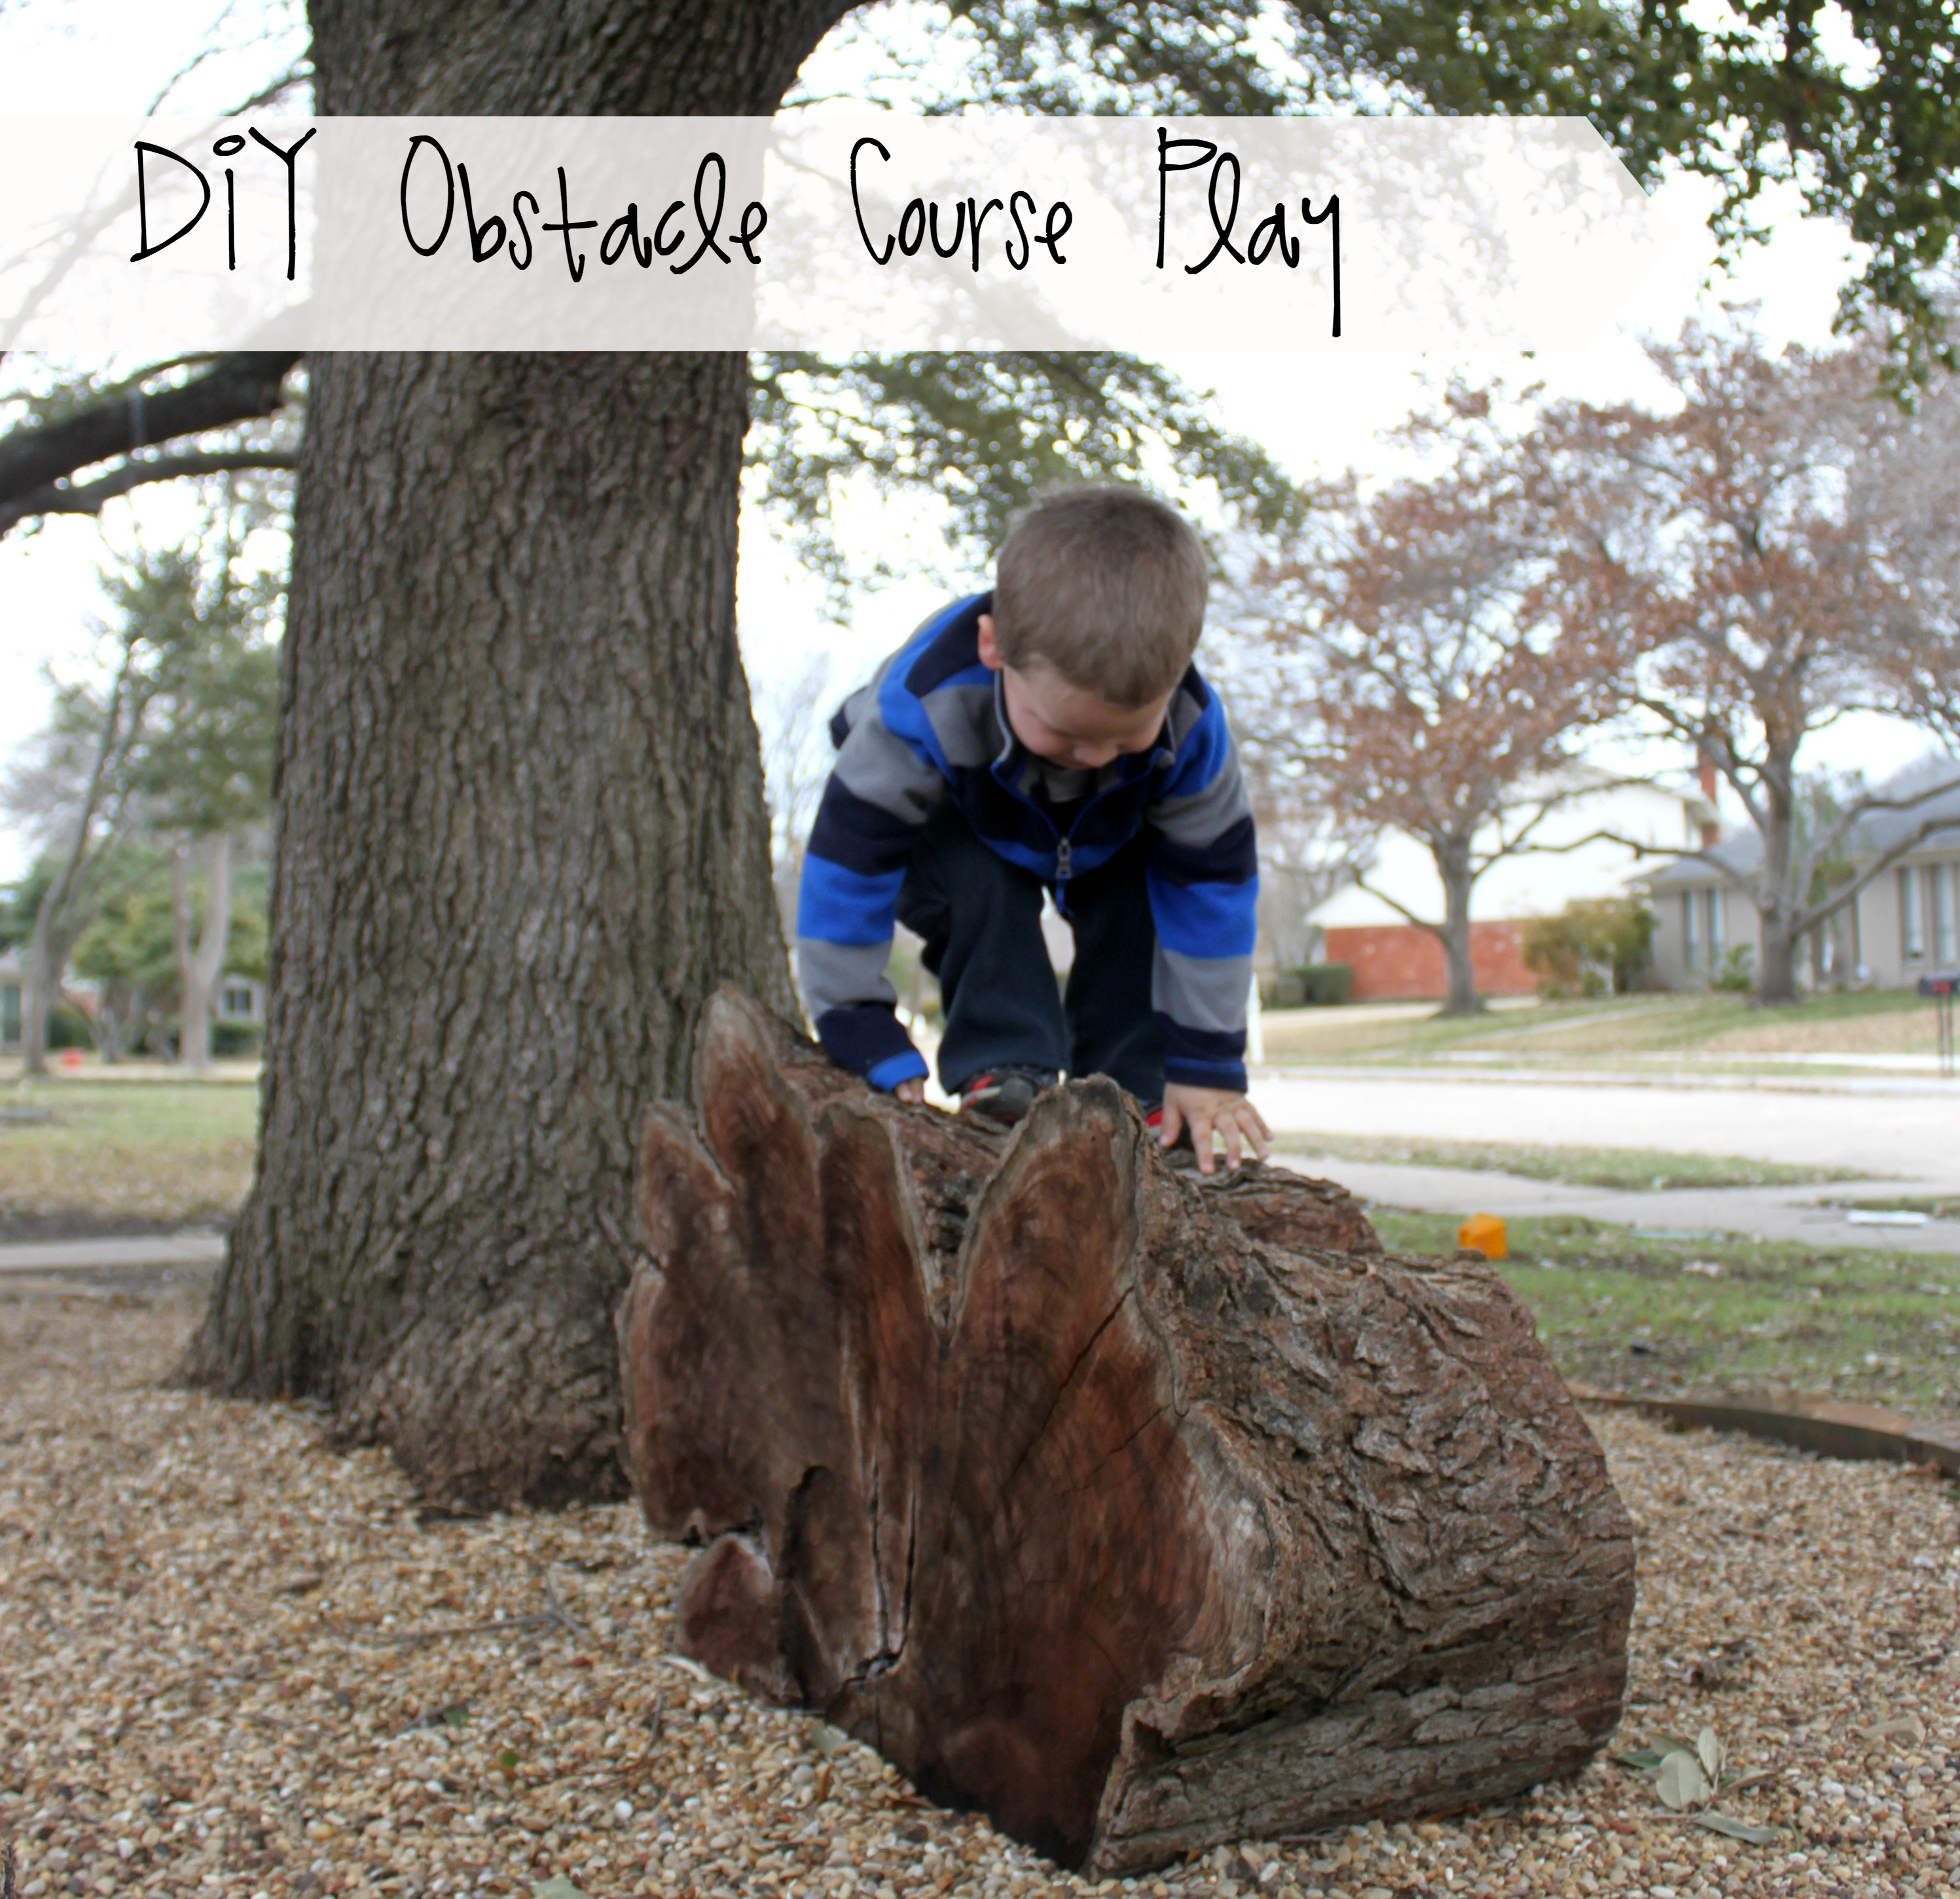 diy outdoor obstacle course play ideas for kids bare feet on the